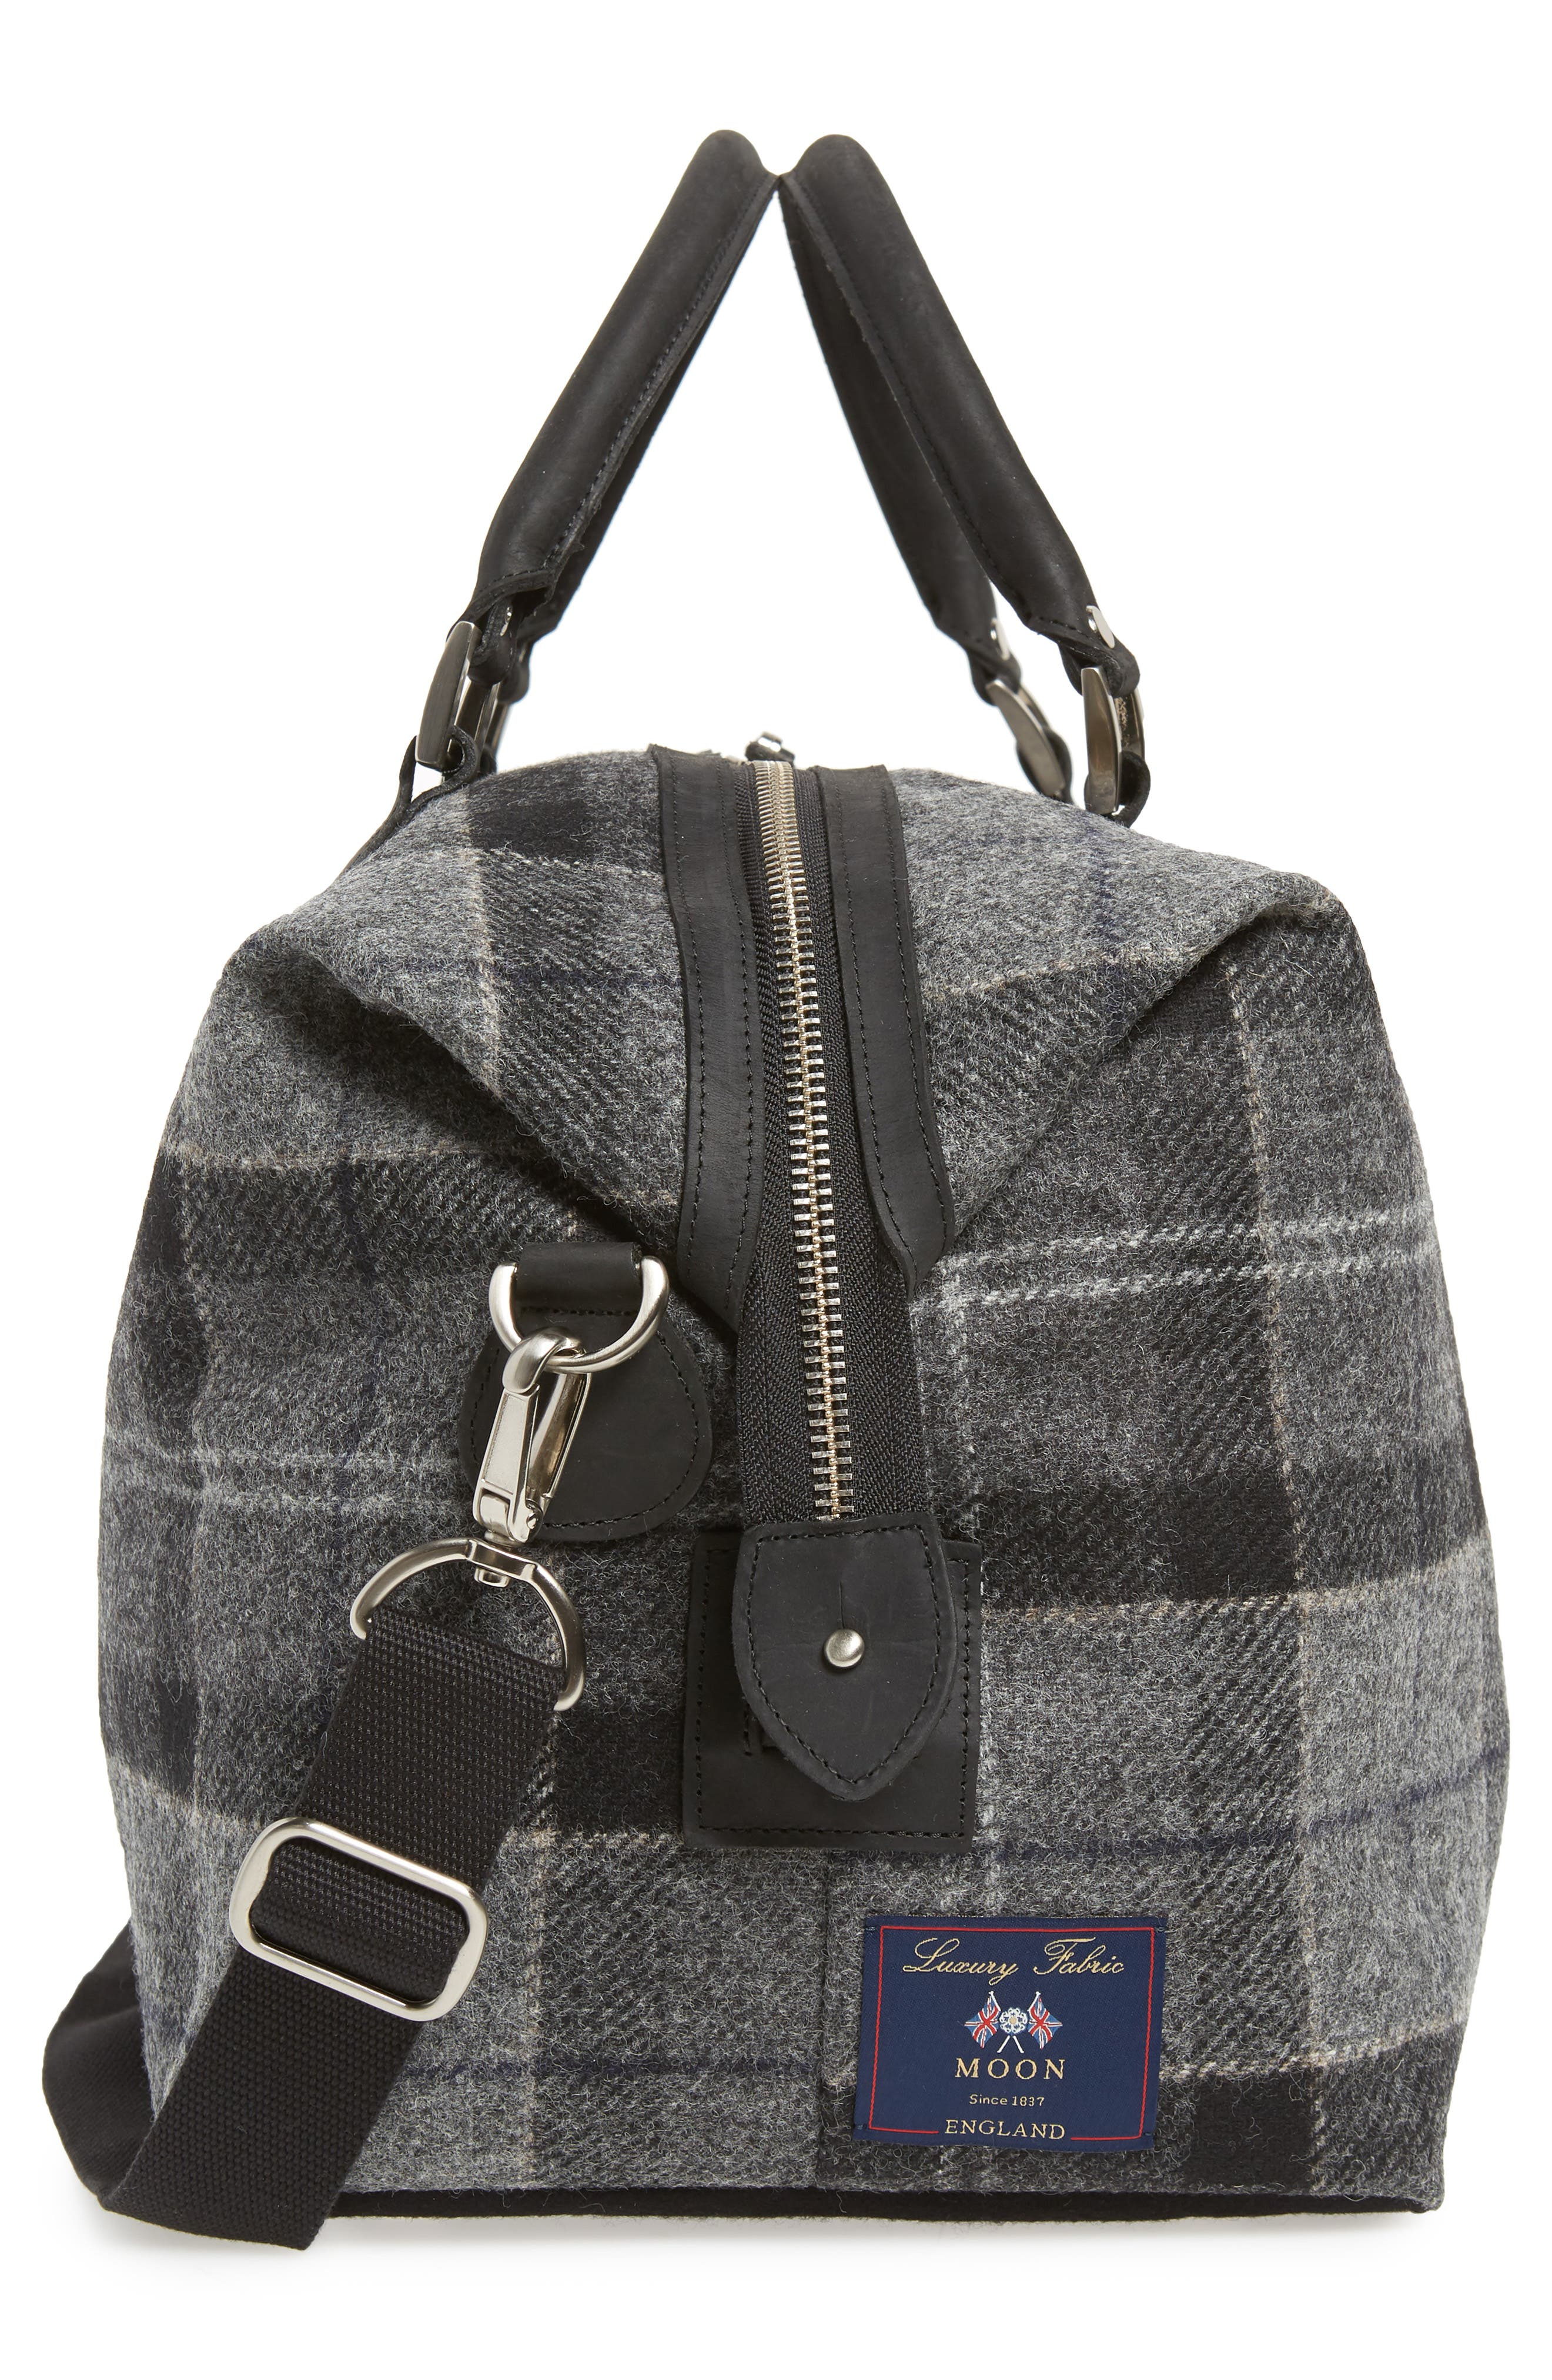 Shadow Duffel Bag,                             Alternate thumbnail 5, color,                             BLACK/ GREY TARTAN